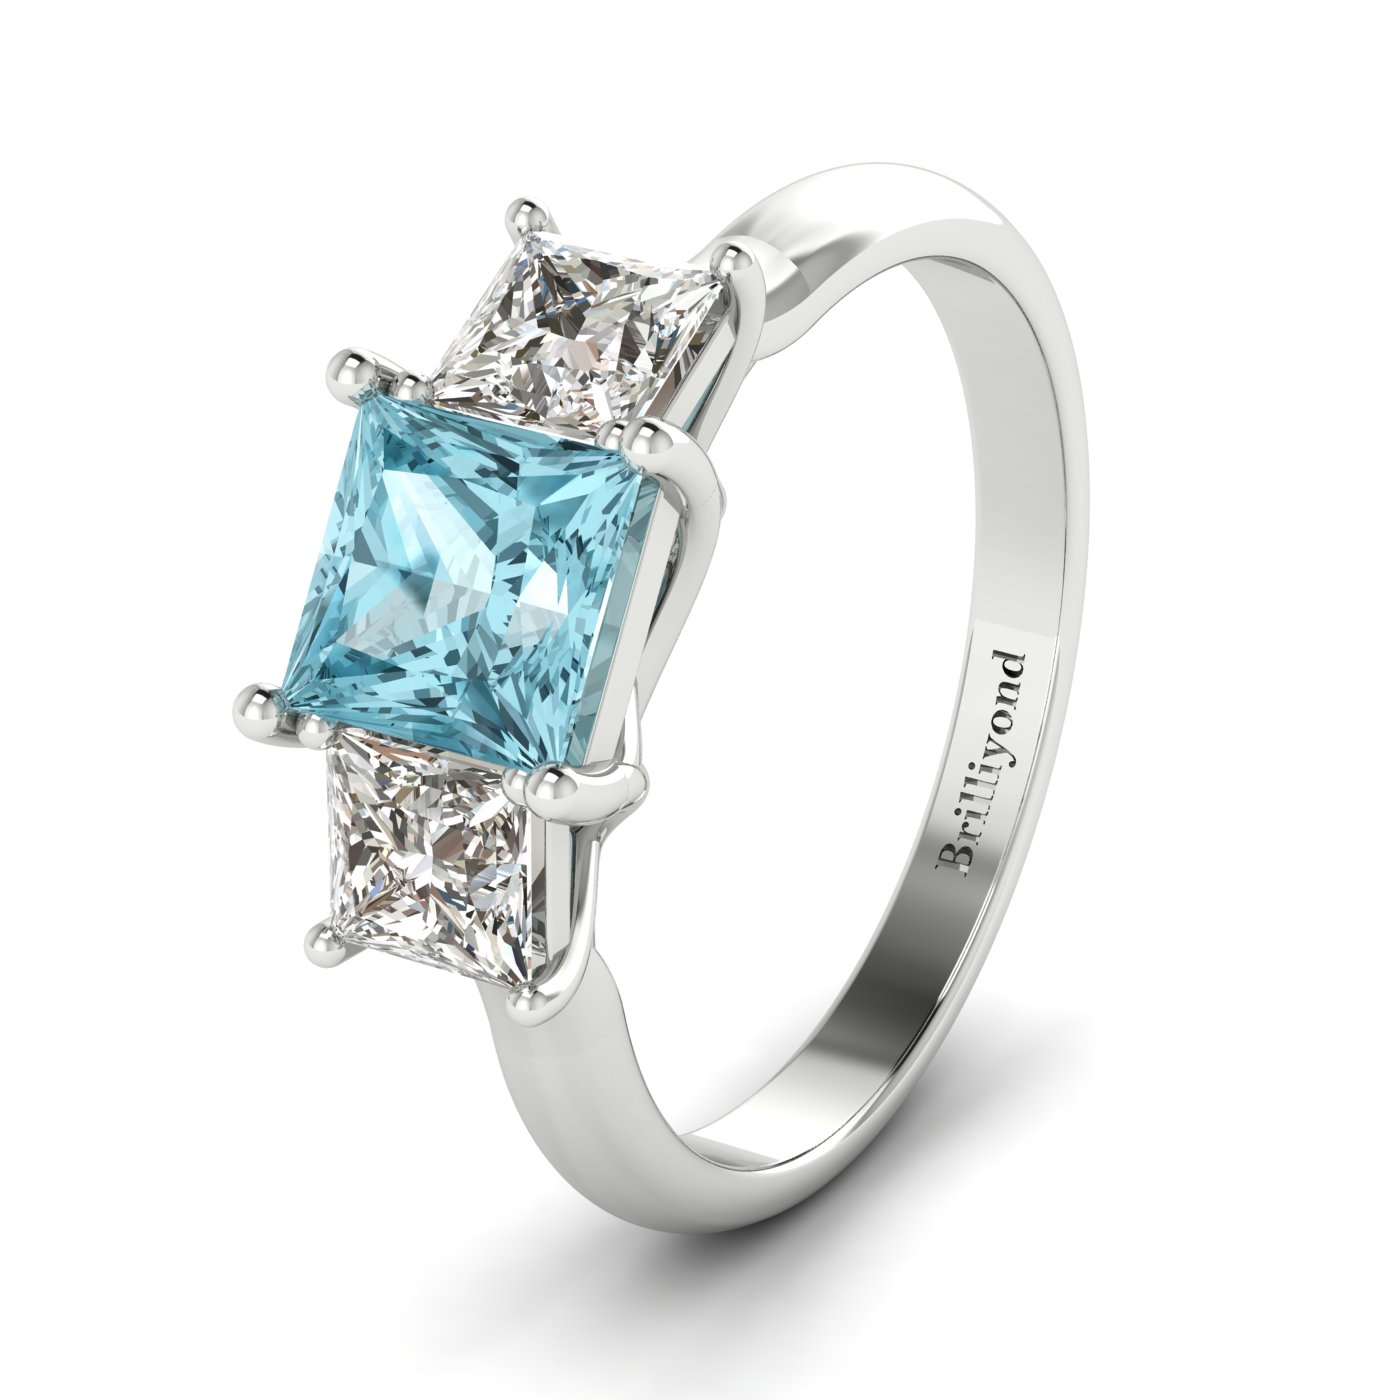 Aquamarine White Gold Princess Cut Engagement Ring Capri_image1